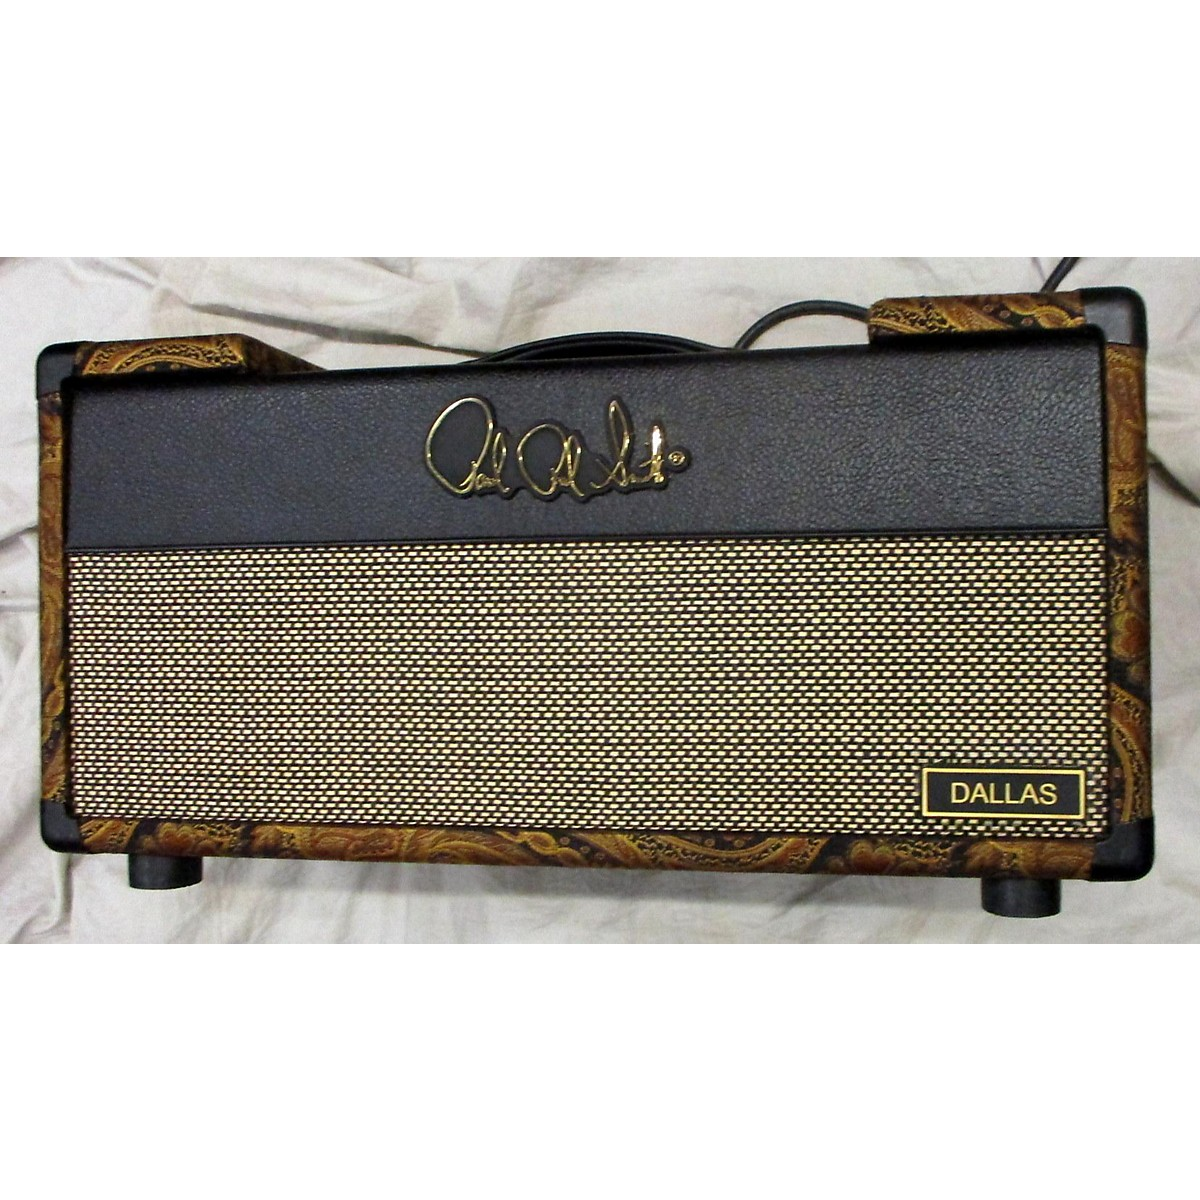 PRS Dallas 59/100 Tube Guitar Amp Head